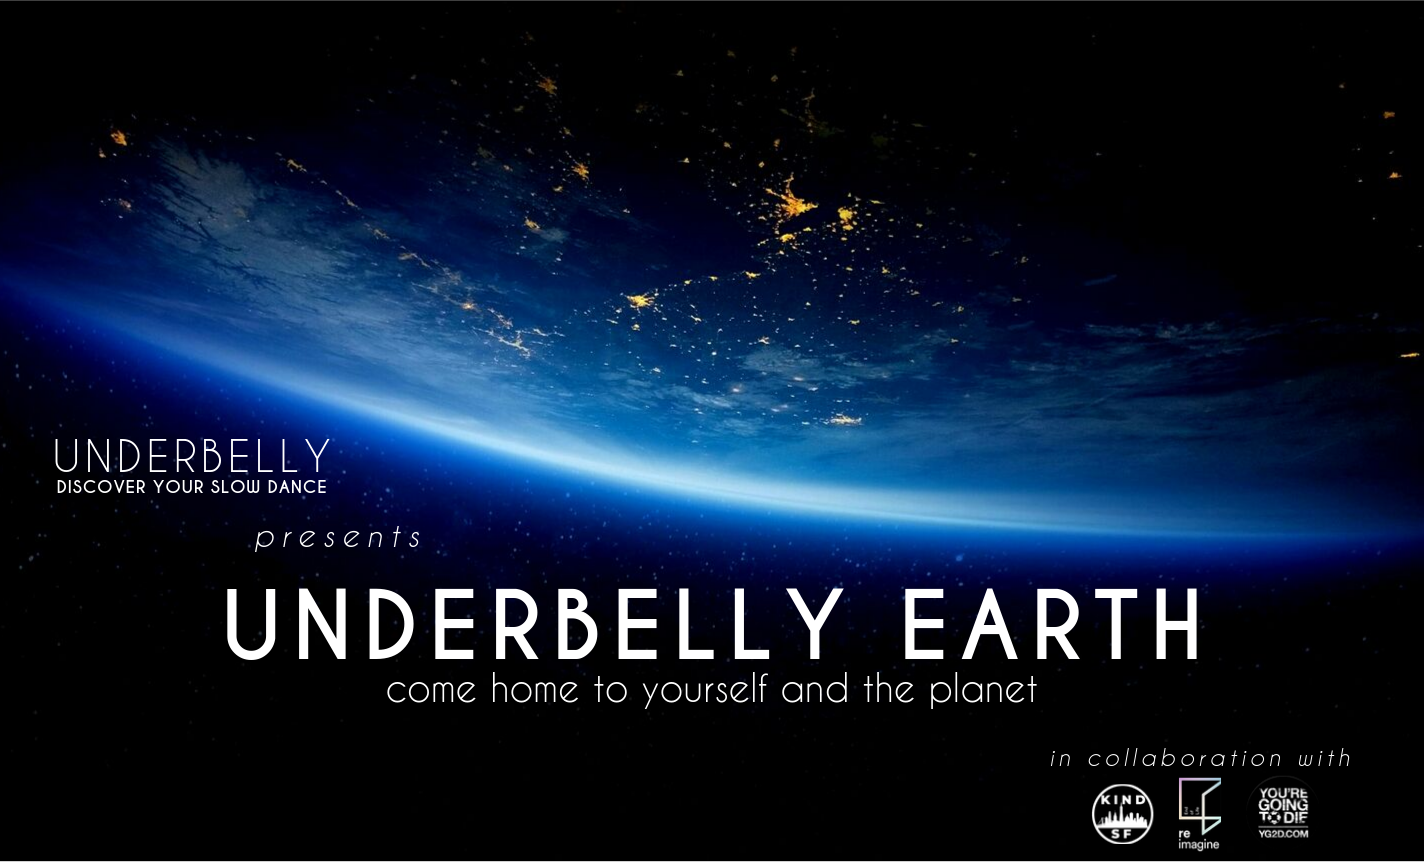 Underbelly Earth